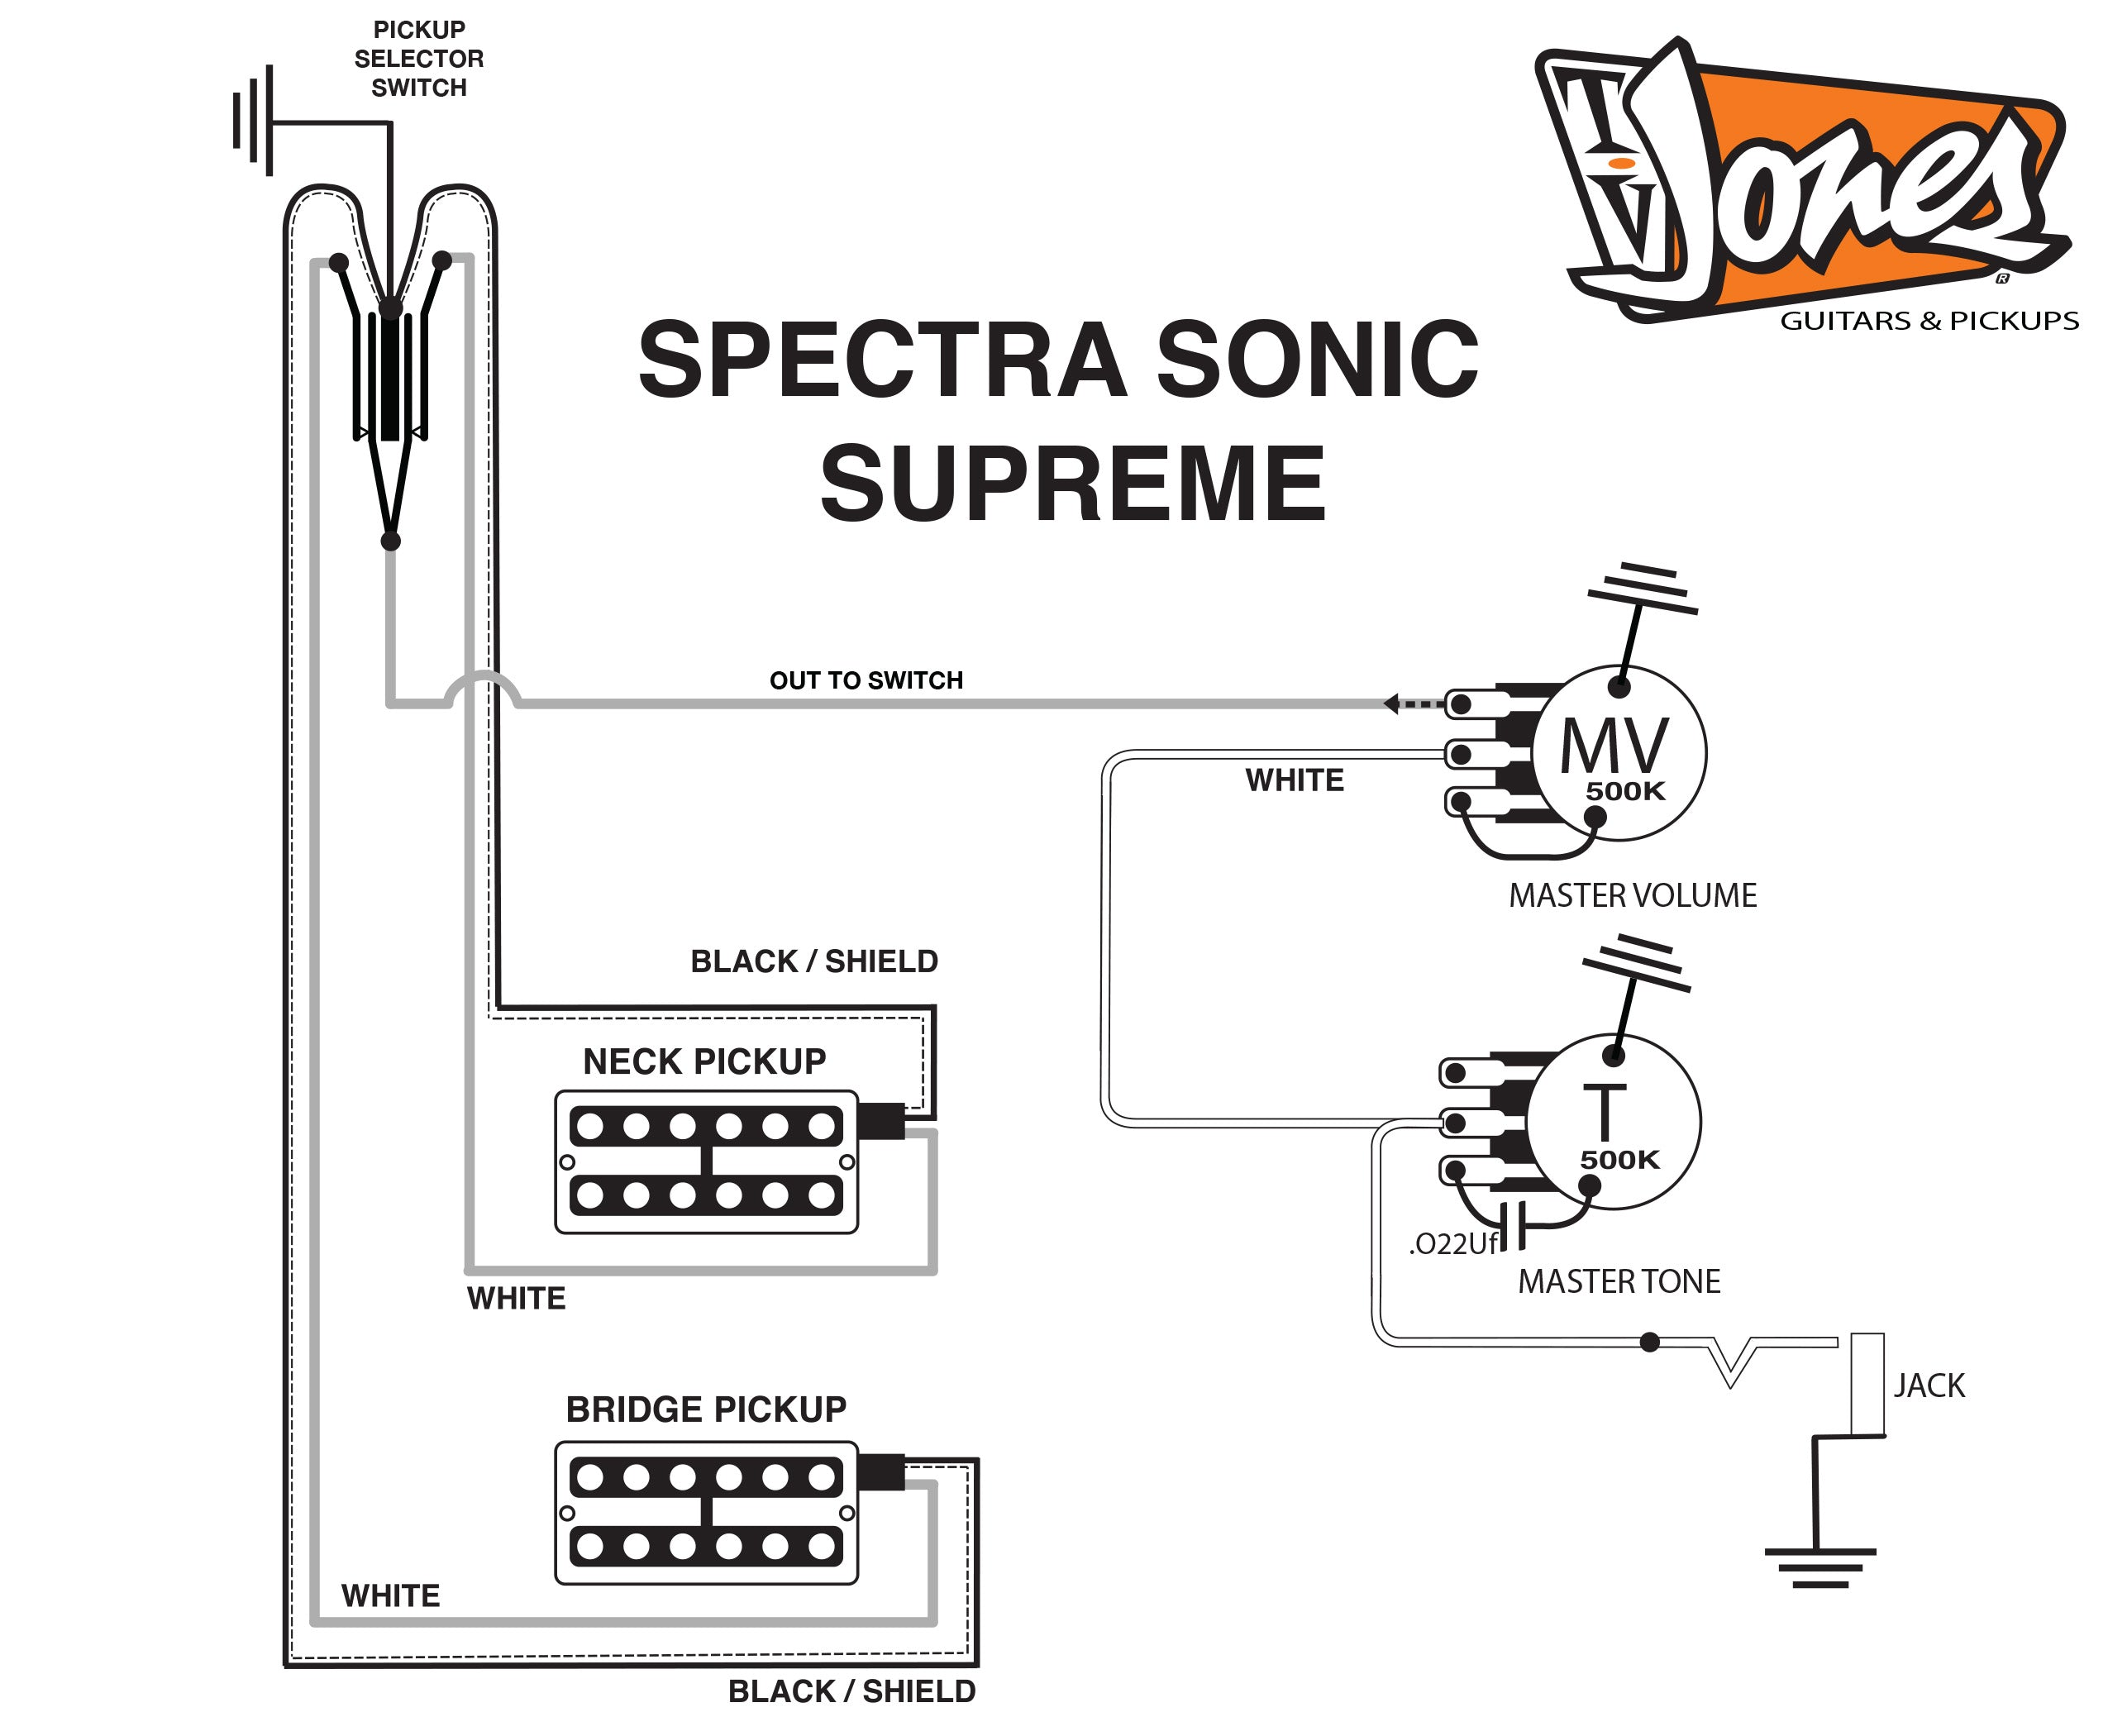 tv jones guitar schematics